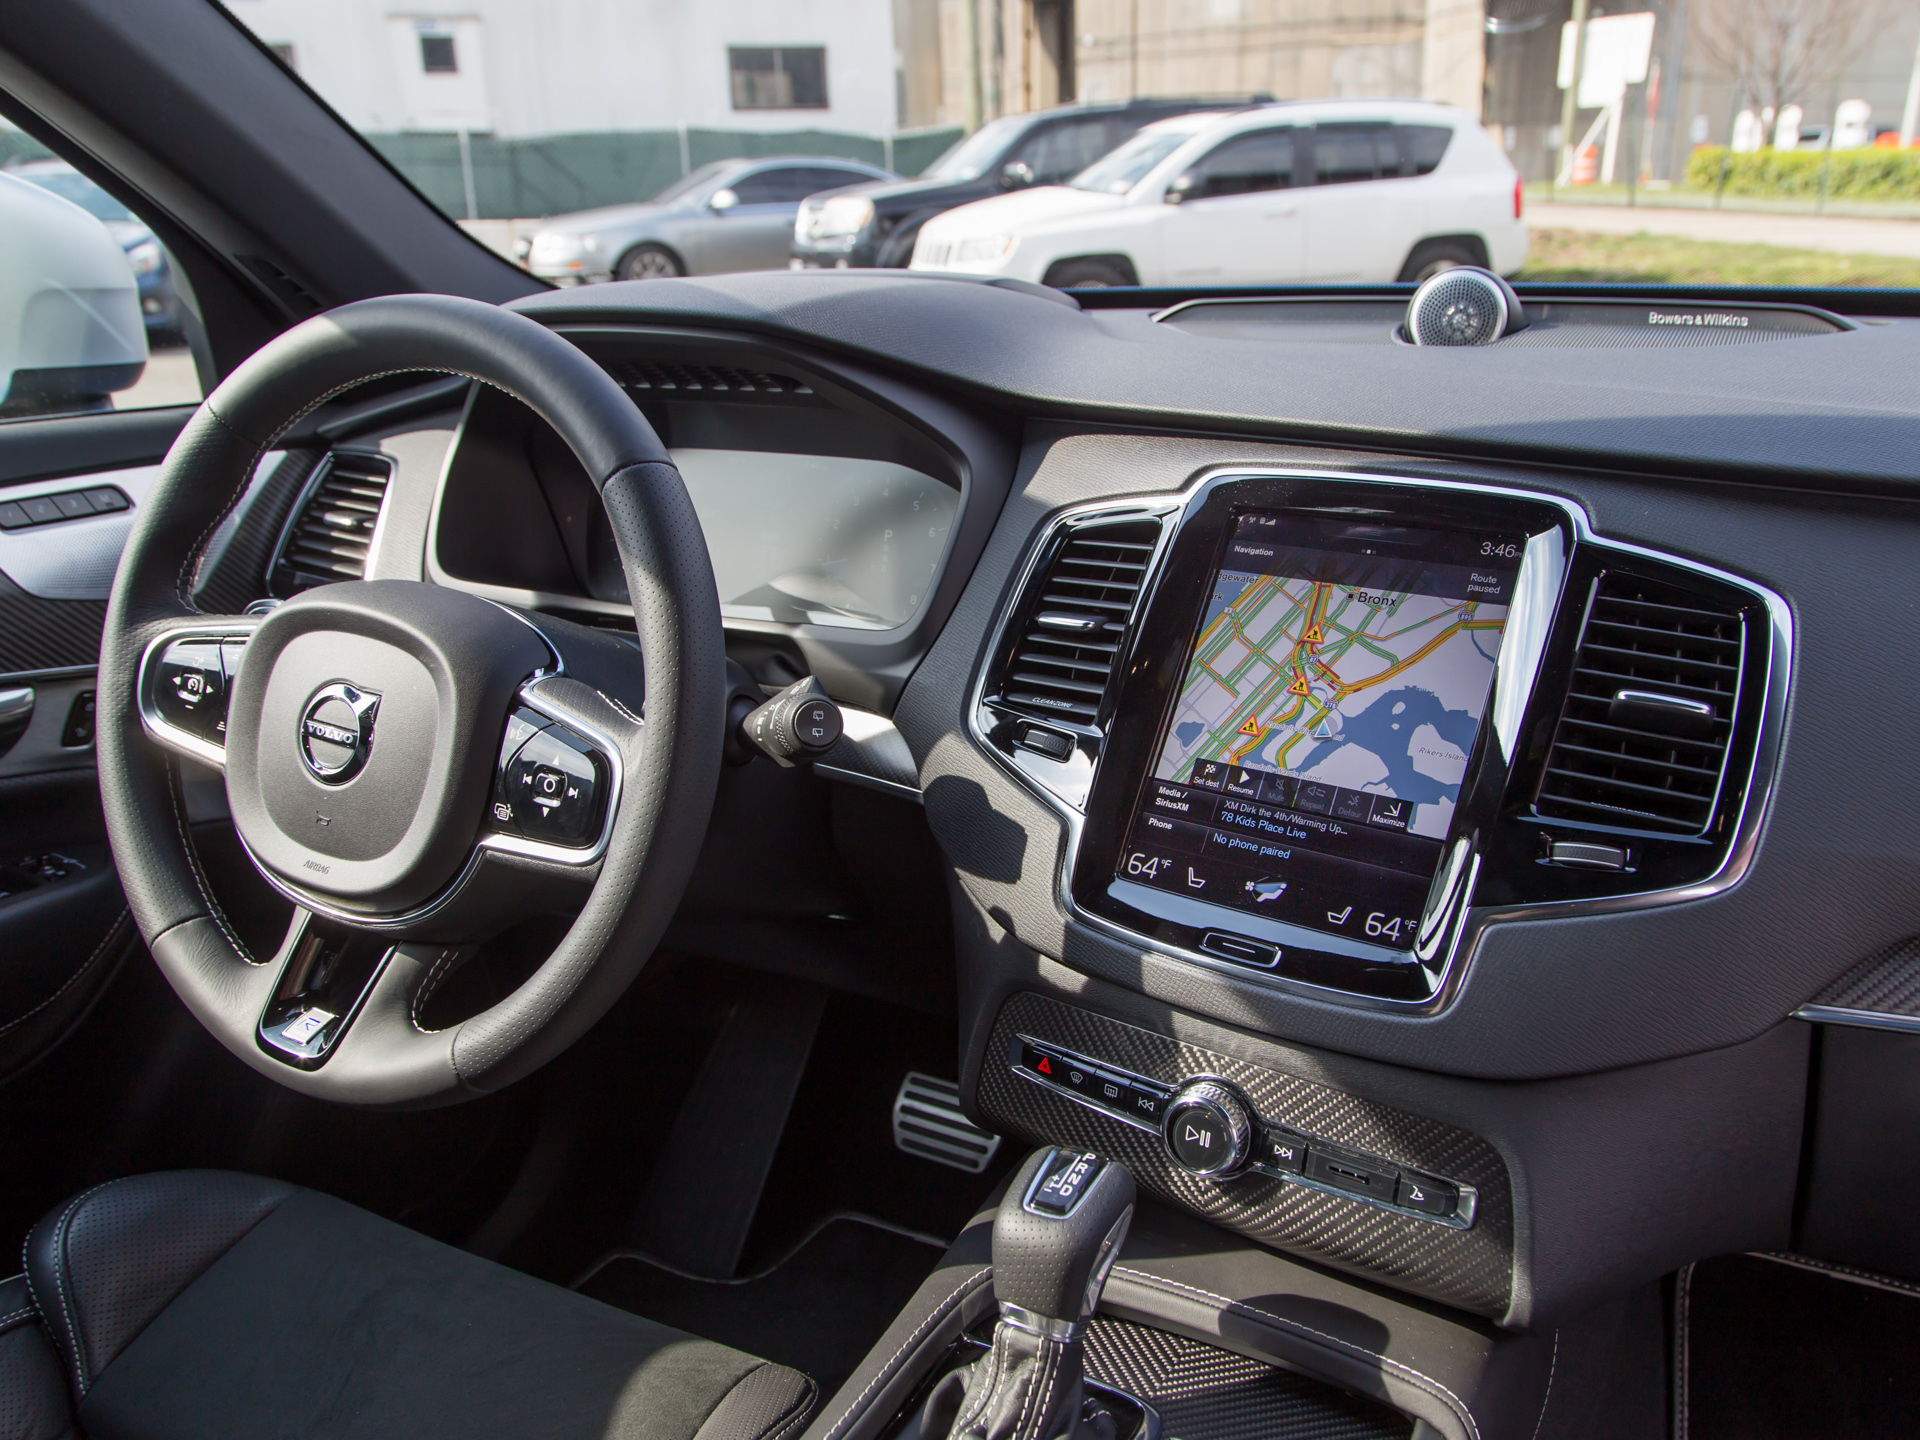 The Volvo XC90 interior.